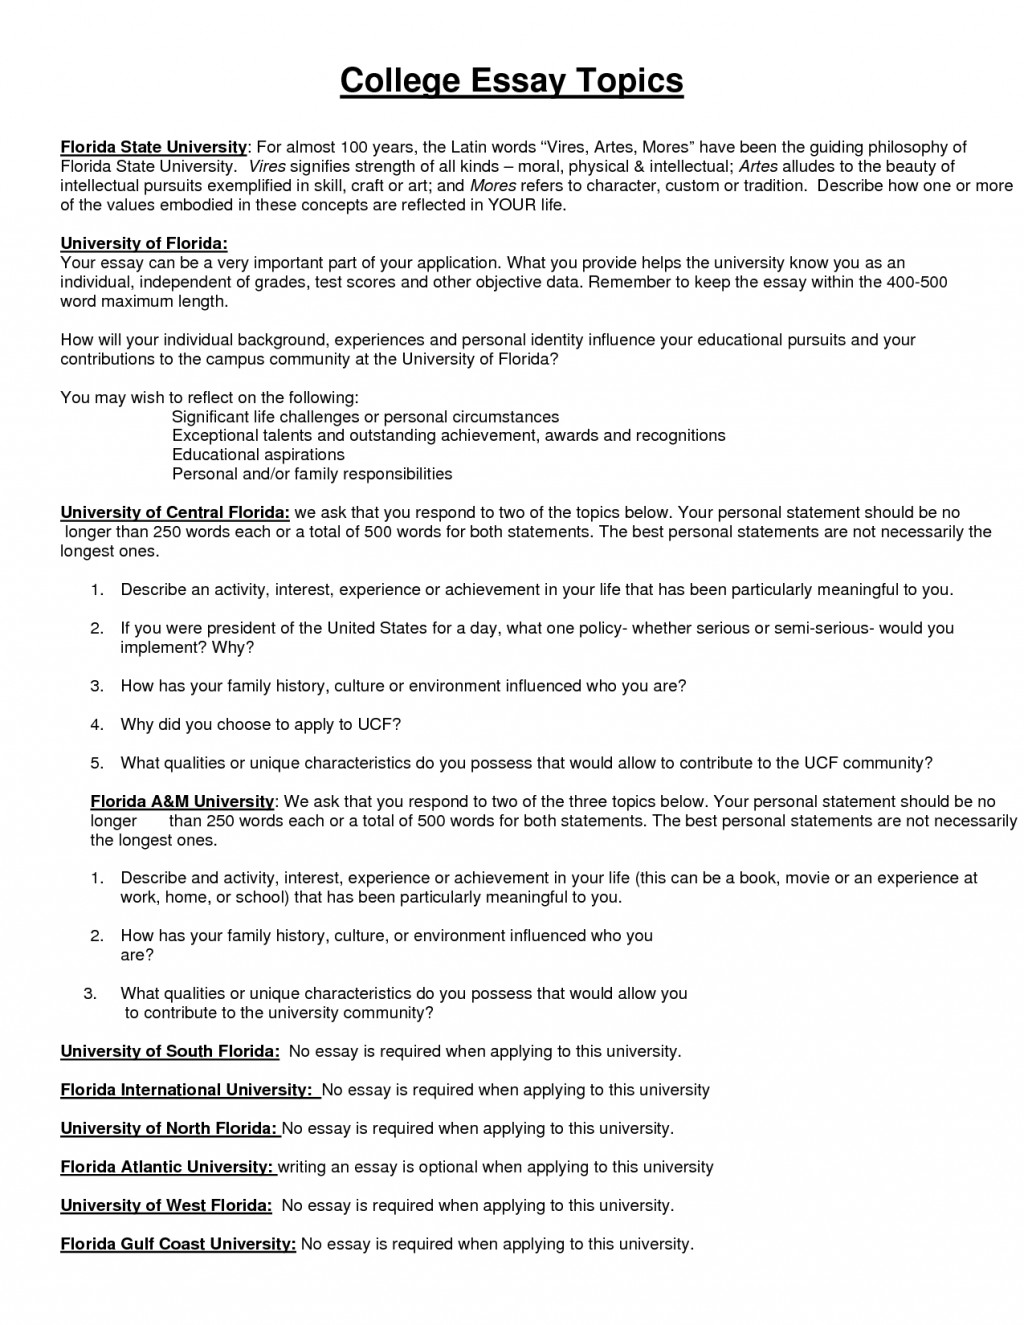 003 Essay Example Common Prompts Free Topic Resume Examples Templates How To Write Good For Formidable App Prompt 4 Scholarship Large